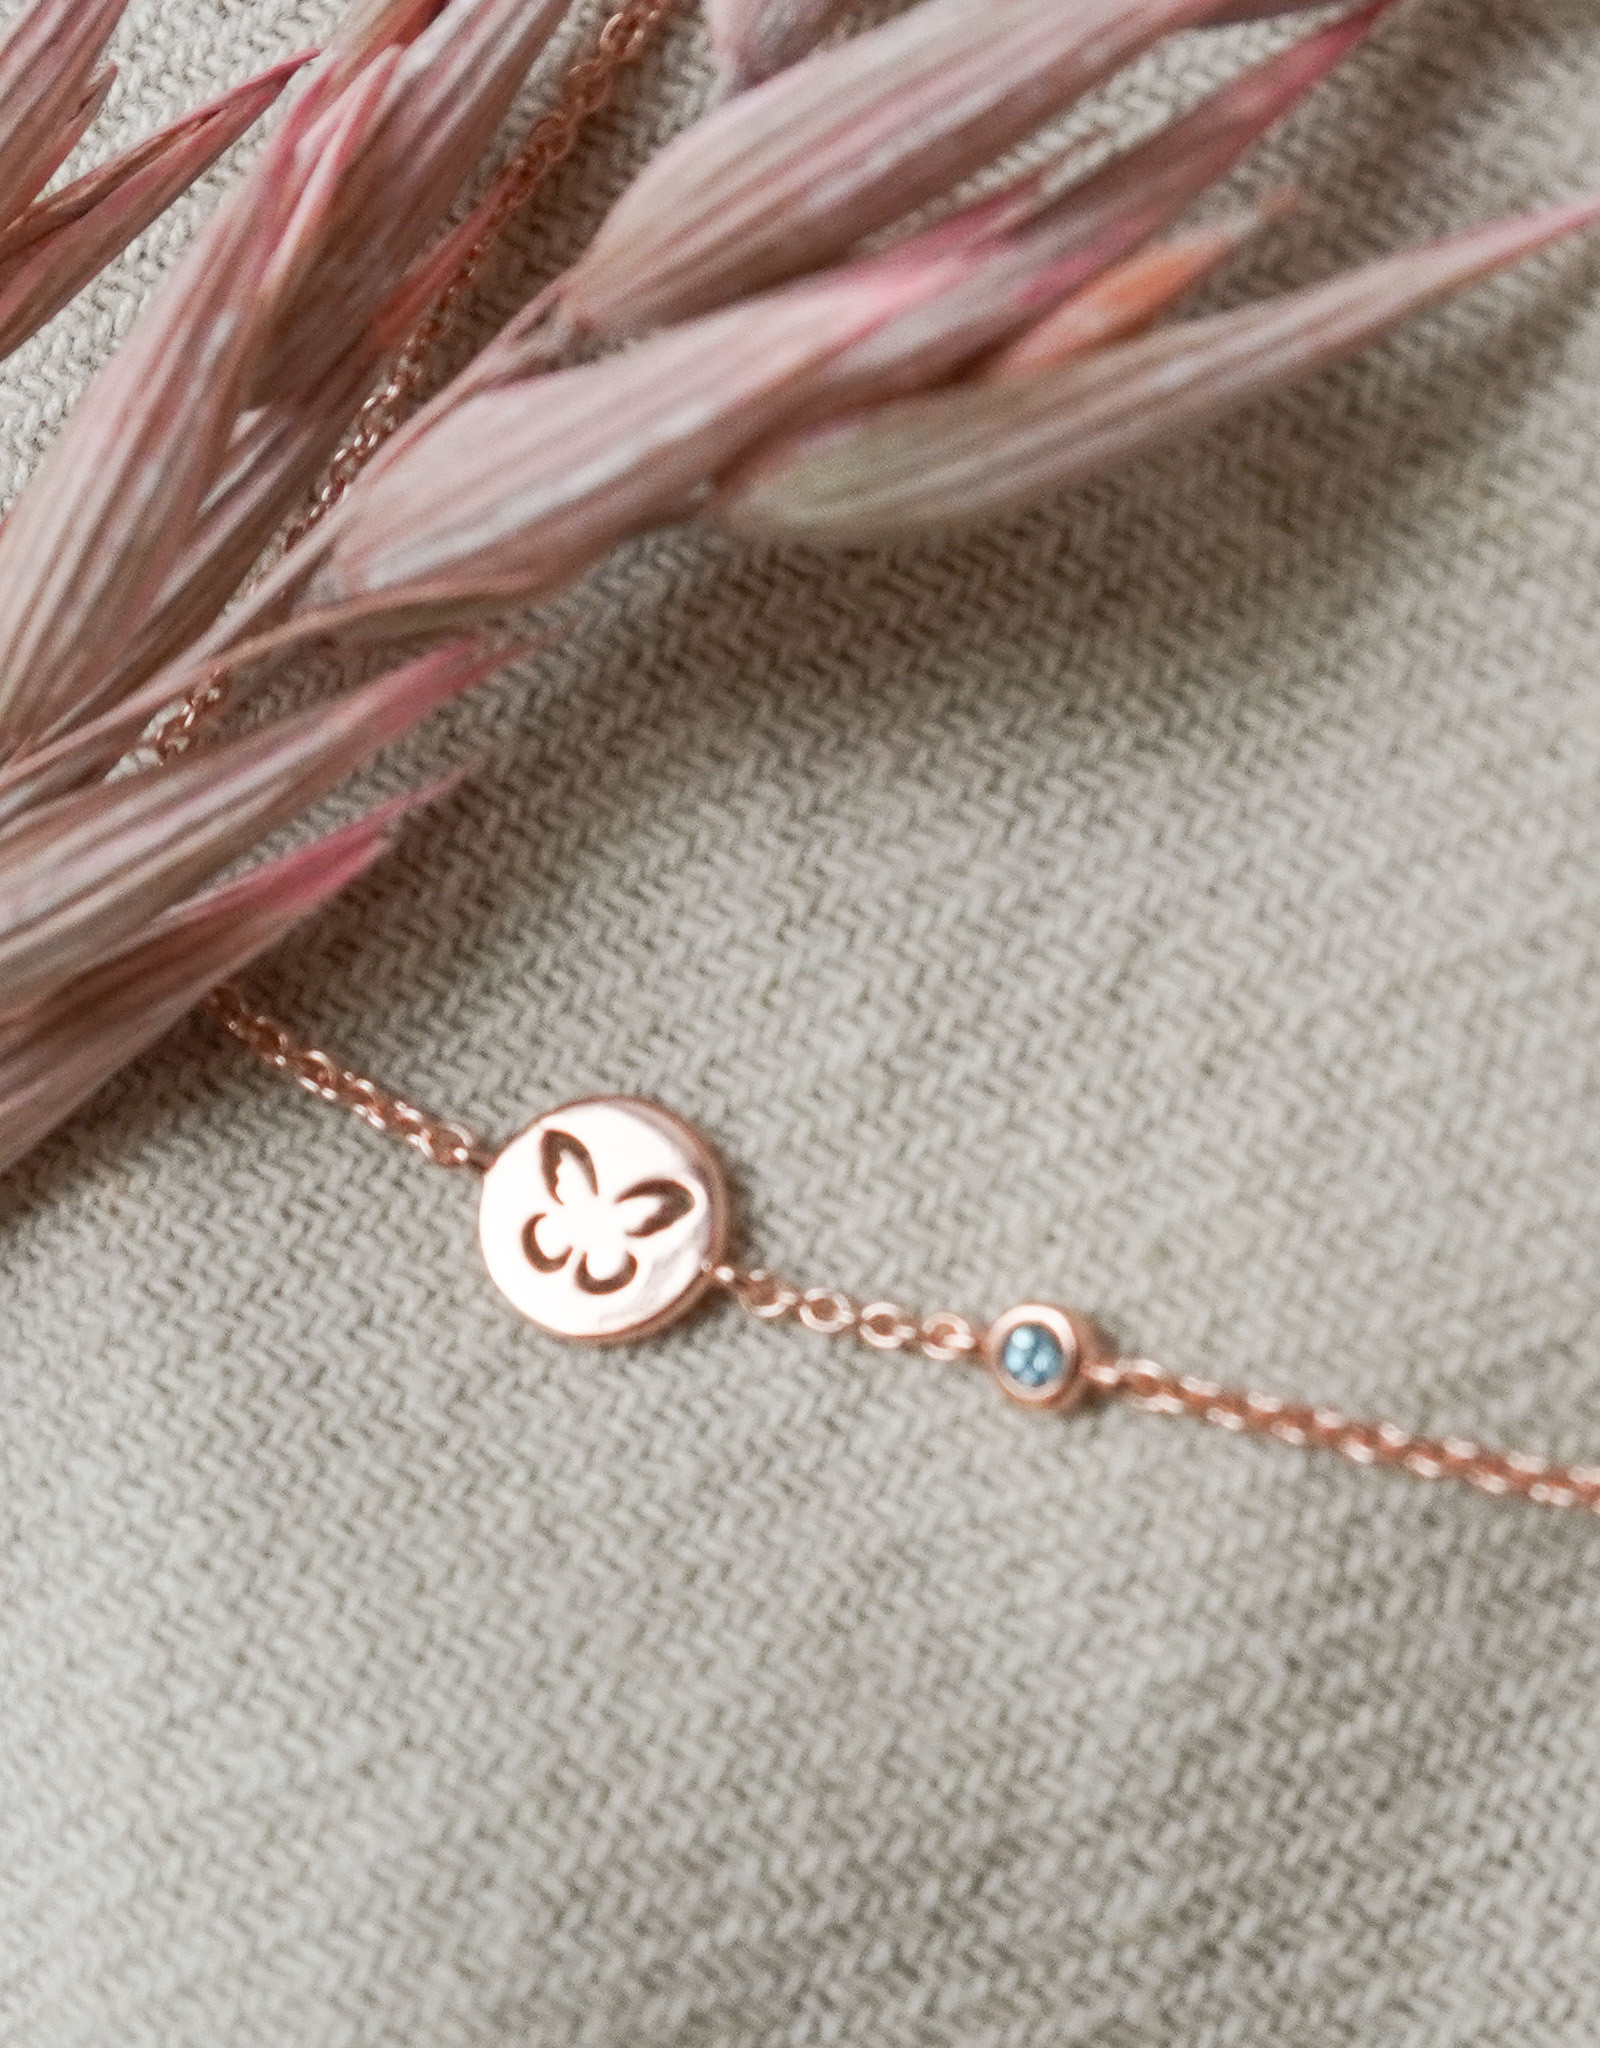 Design your bracelet with 2 charms